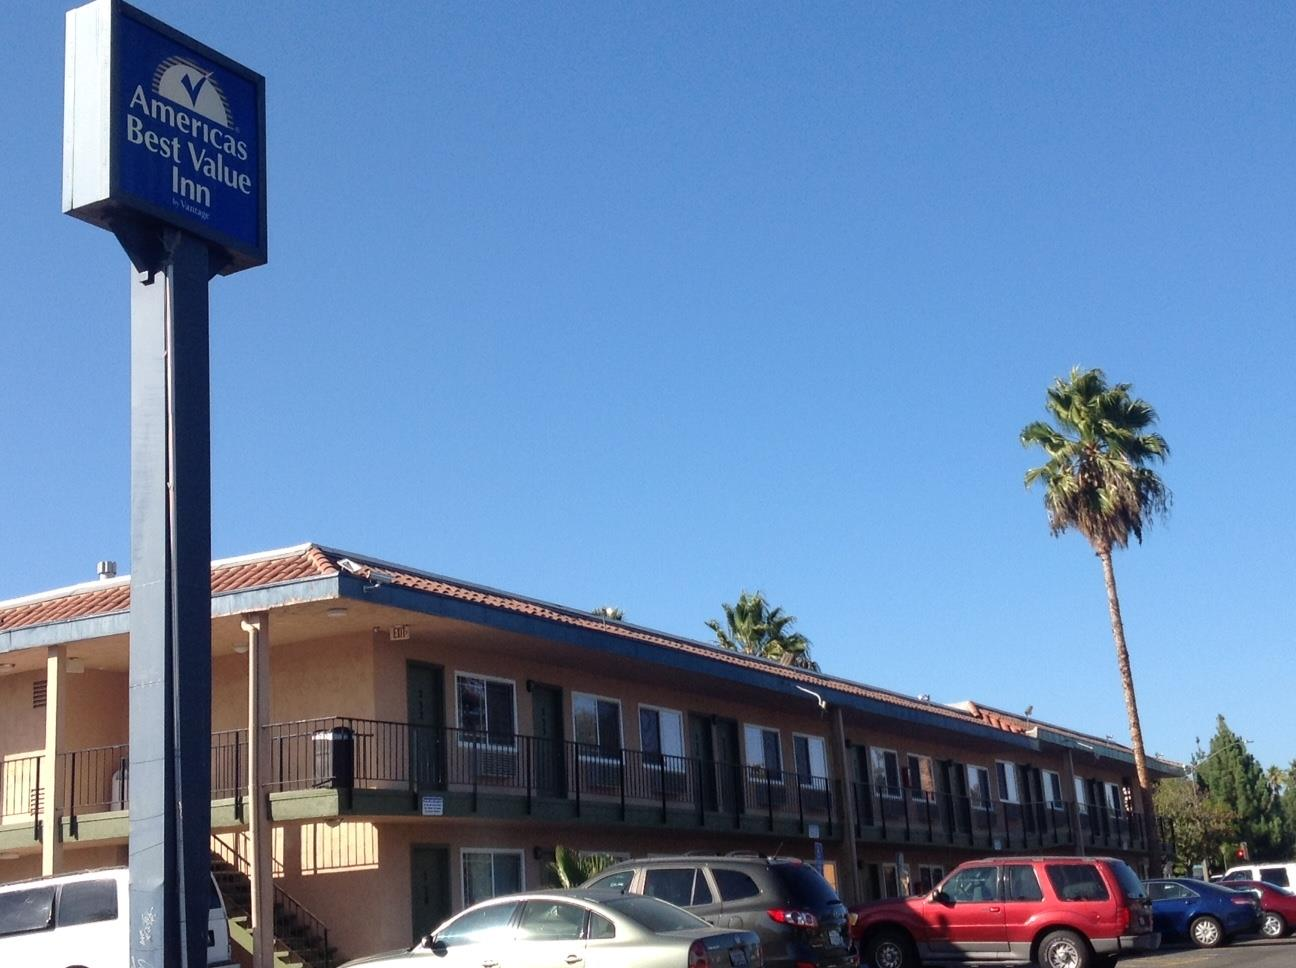 Americas Best Value Inn - Thousand Oaks image 0